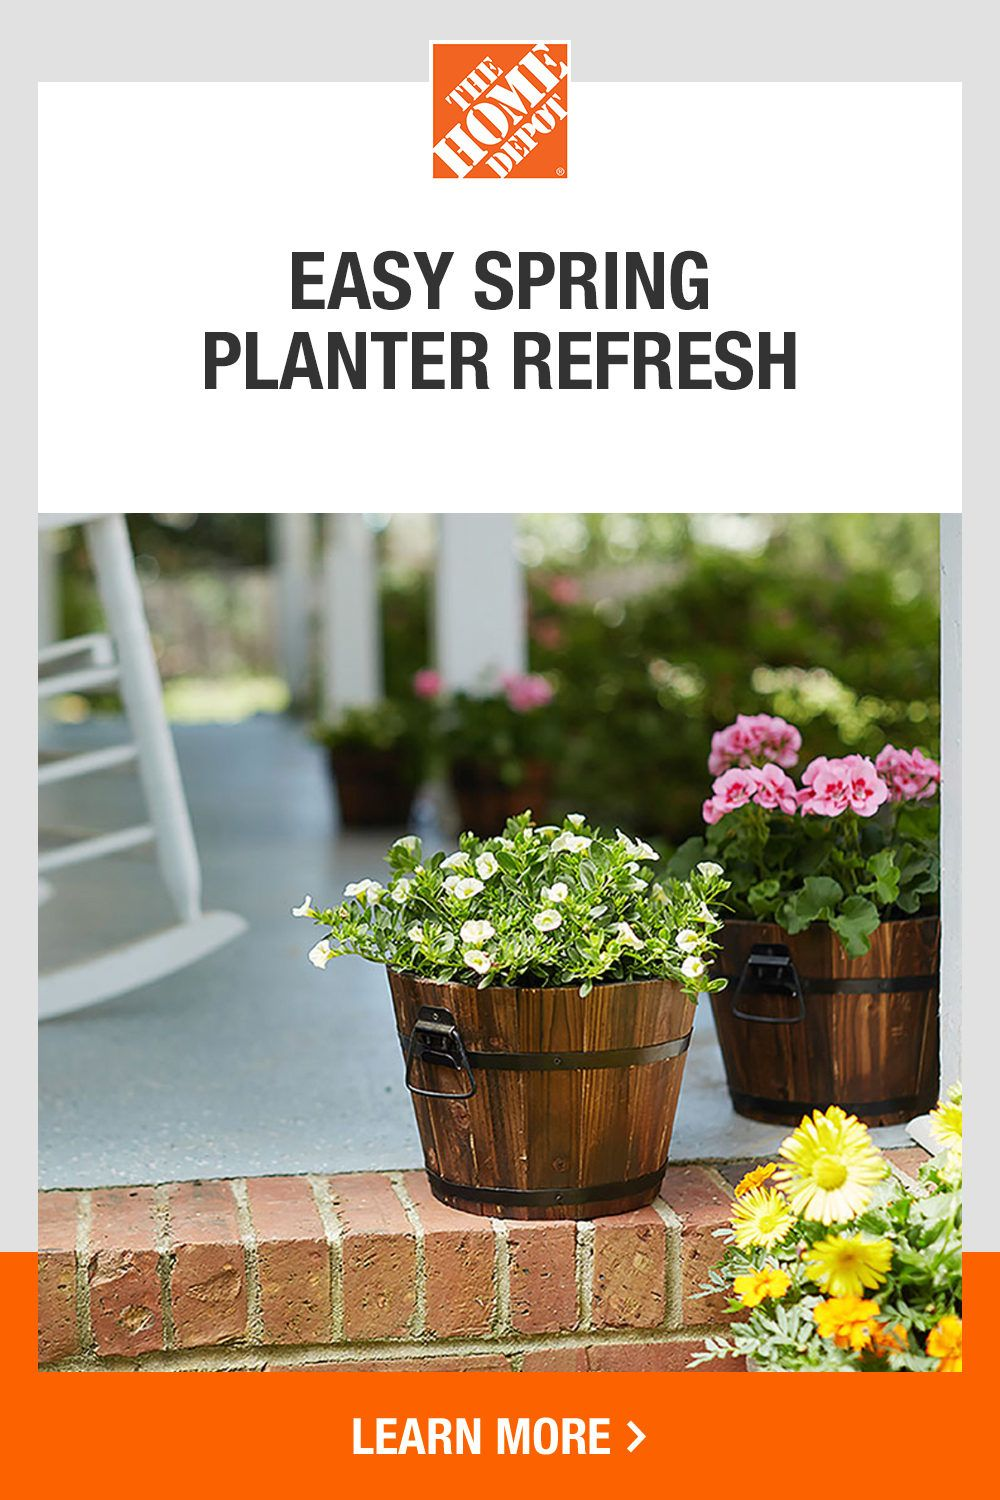 Perk Up Your Planters This Spring With New Potted Plant Containers In 2020 Spring Planter Planters Container Plants